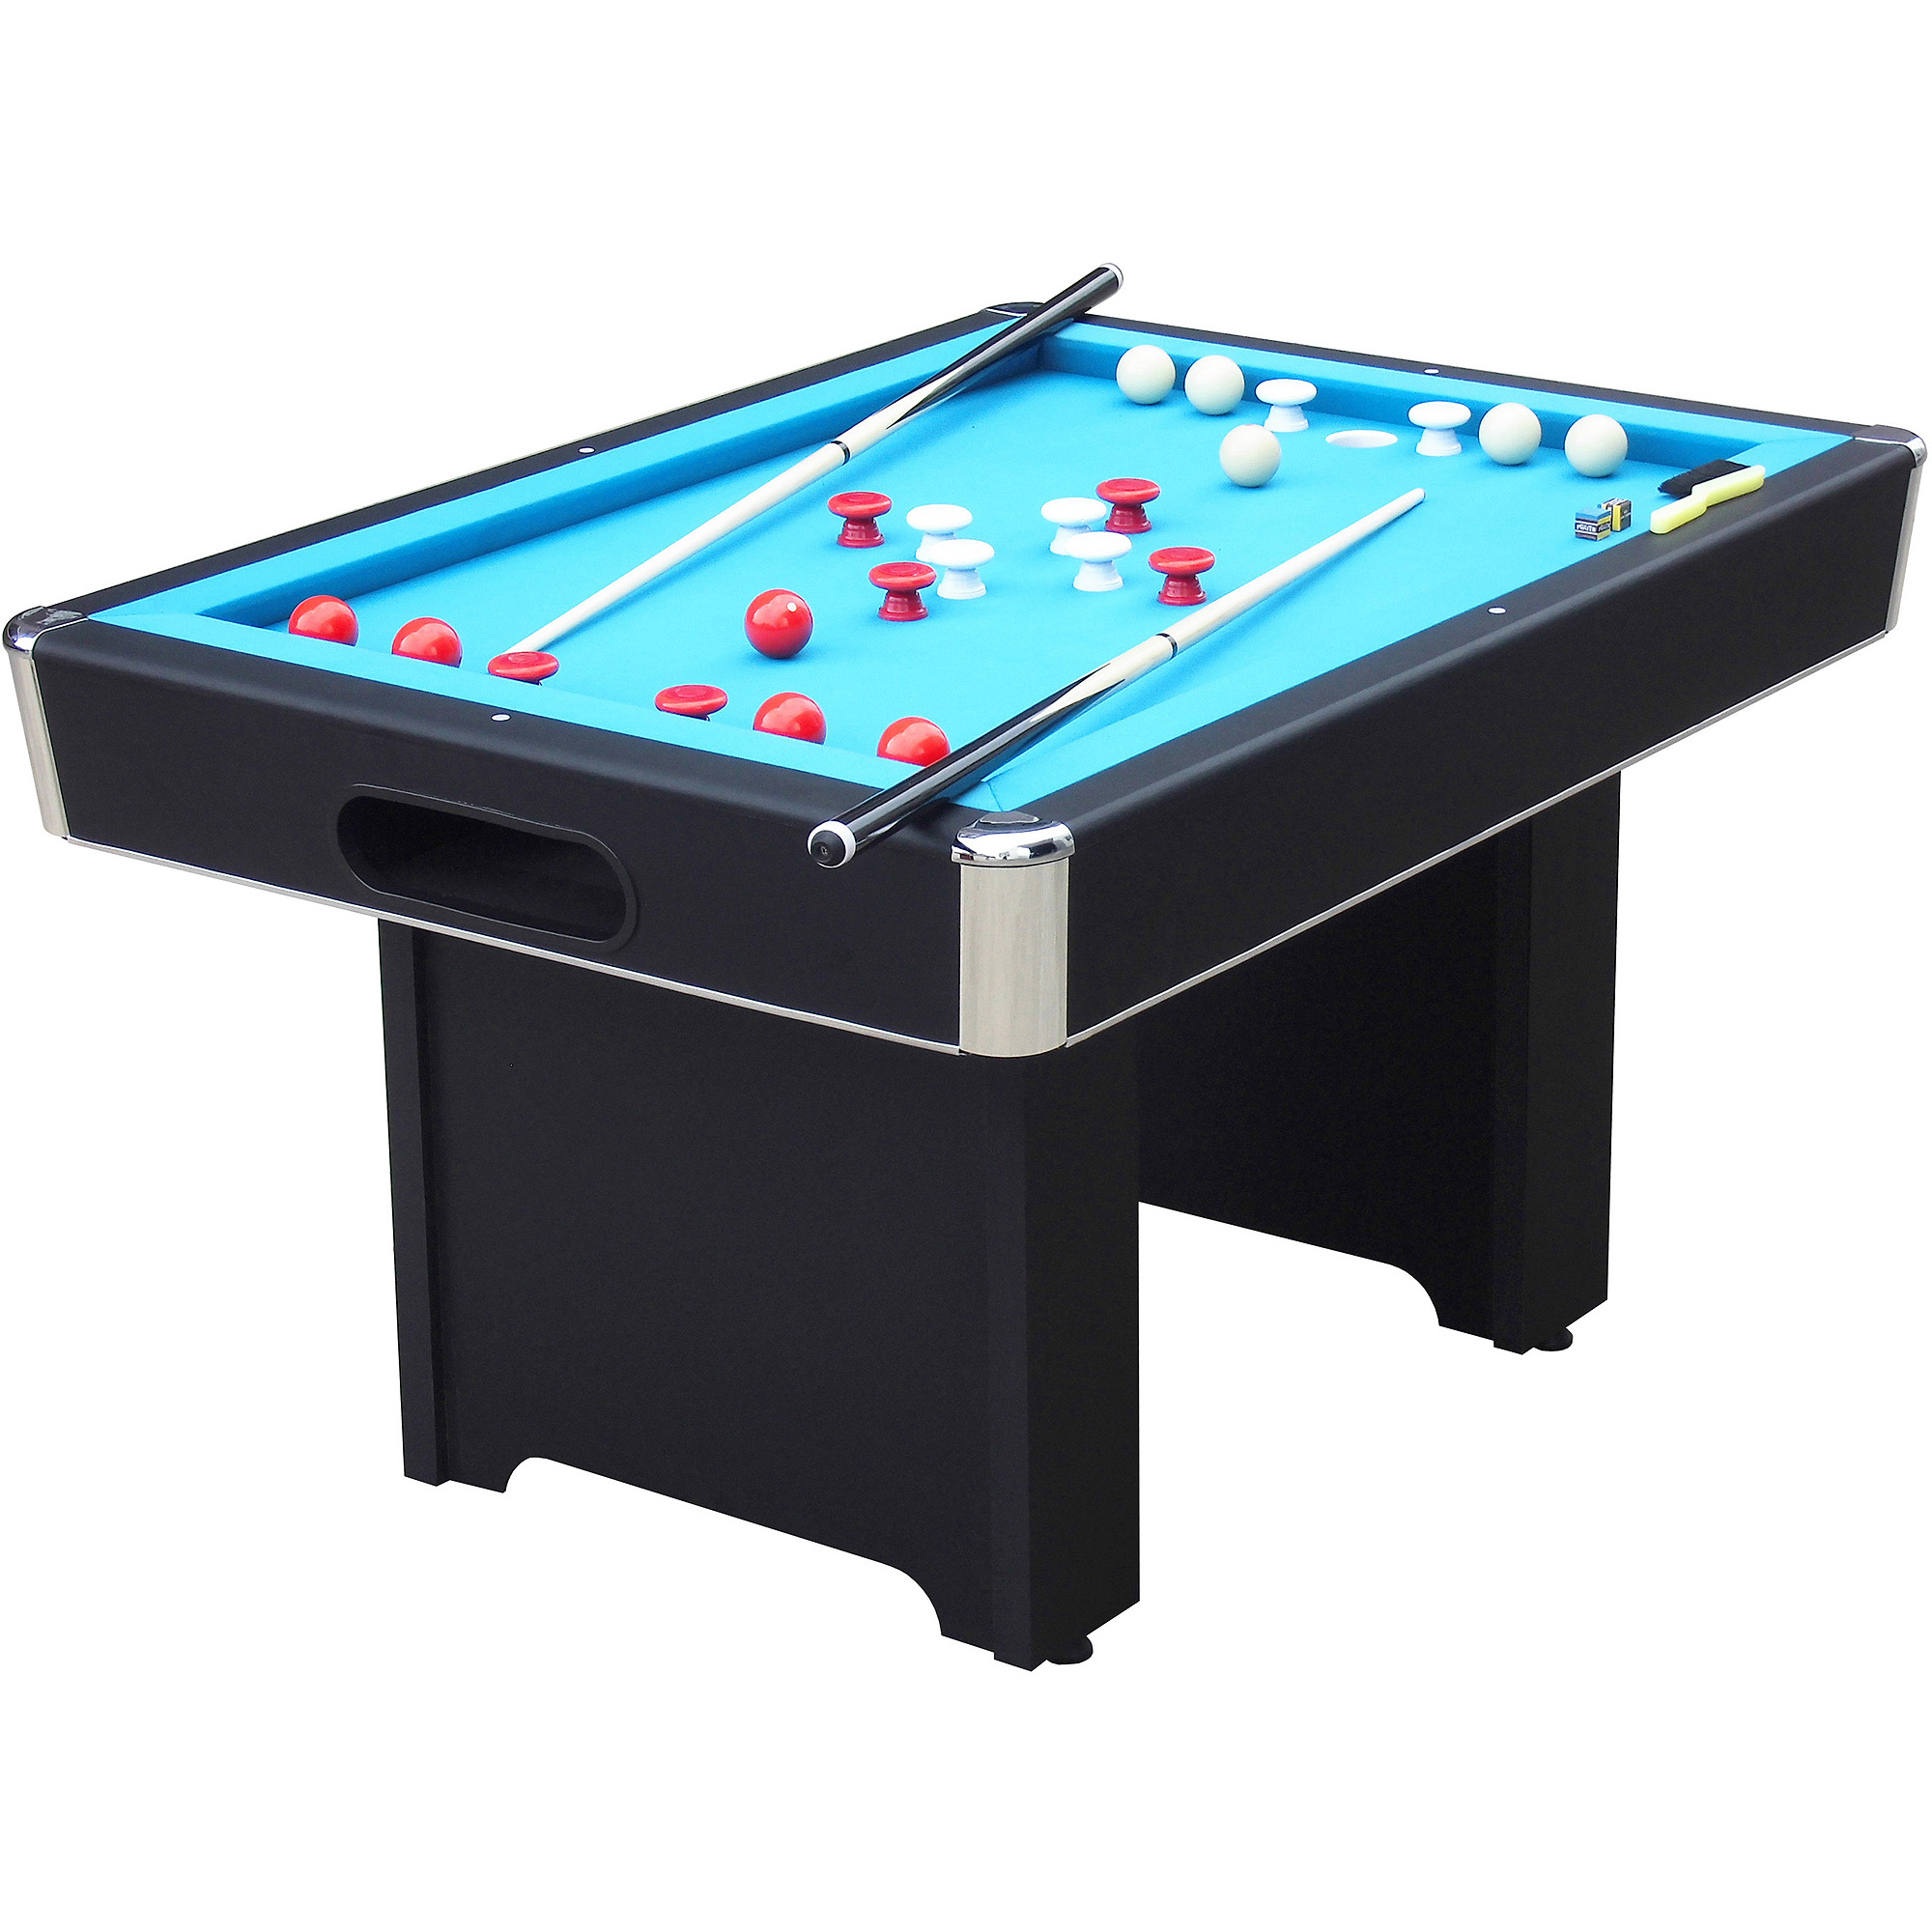 Playcraft Hartford Slate Black Bumper 4.5' Pool Table - Walmart